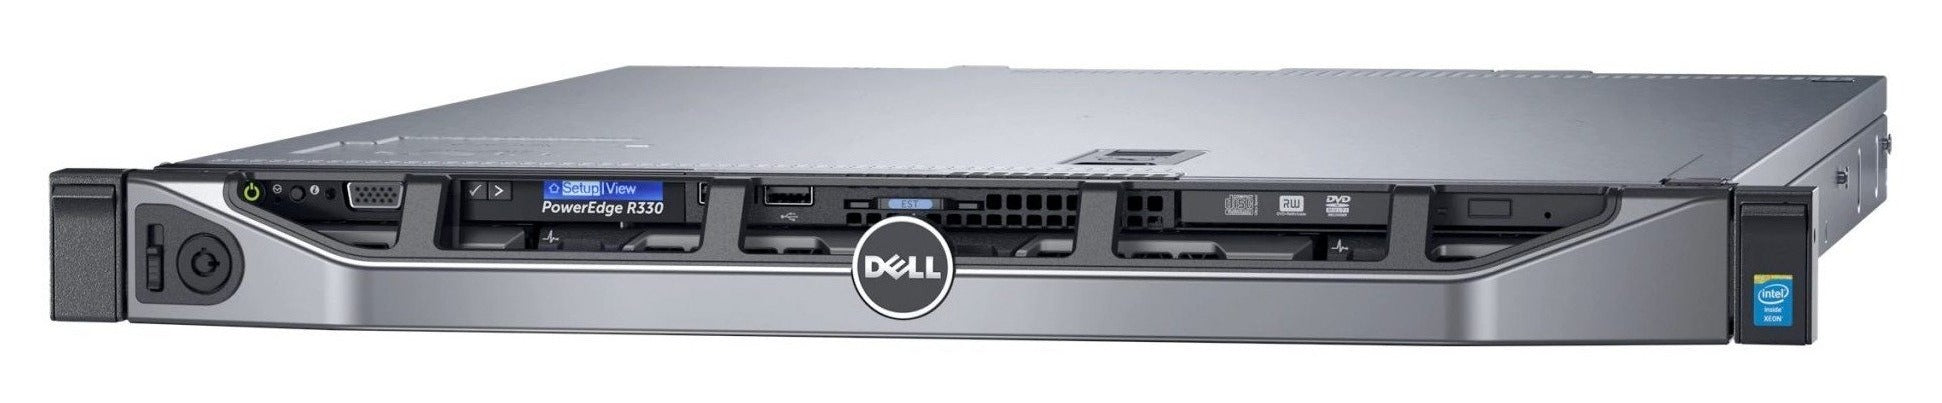 Dell PowerEdge R330 CTO Rack Server